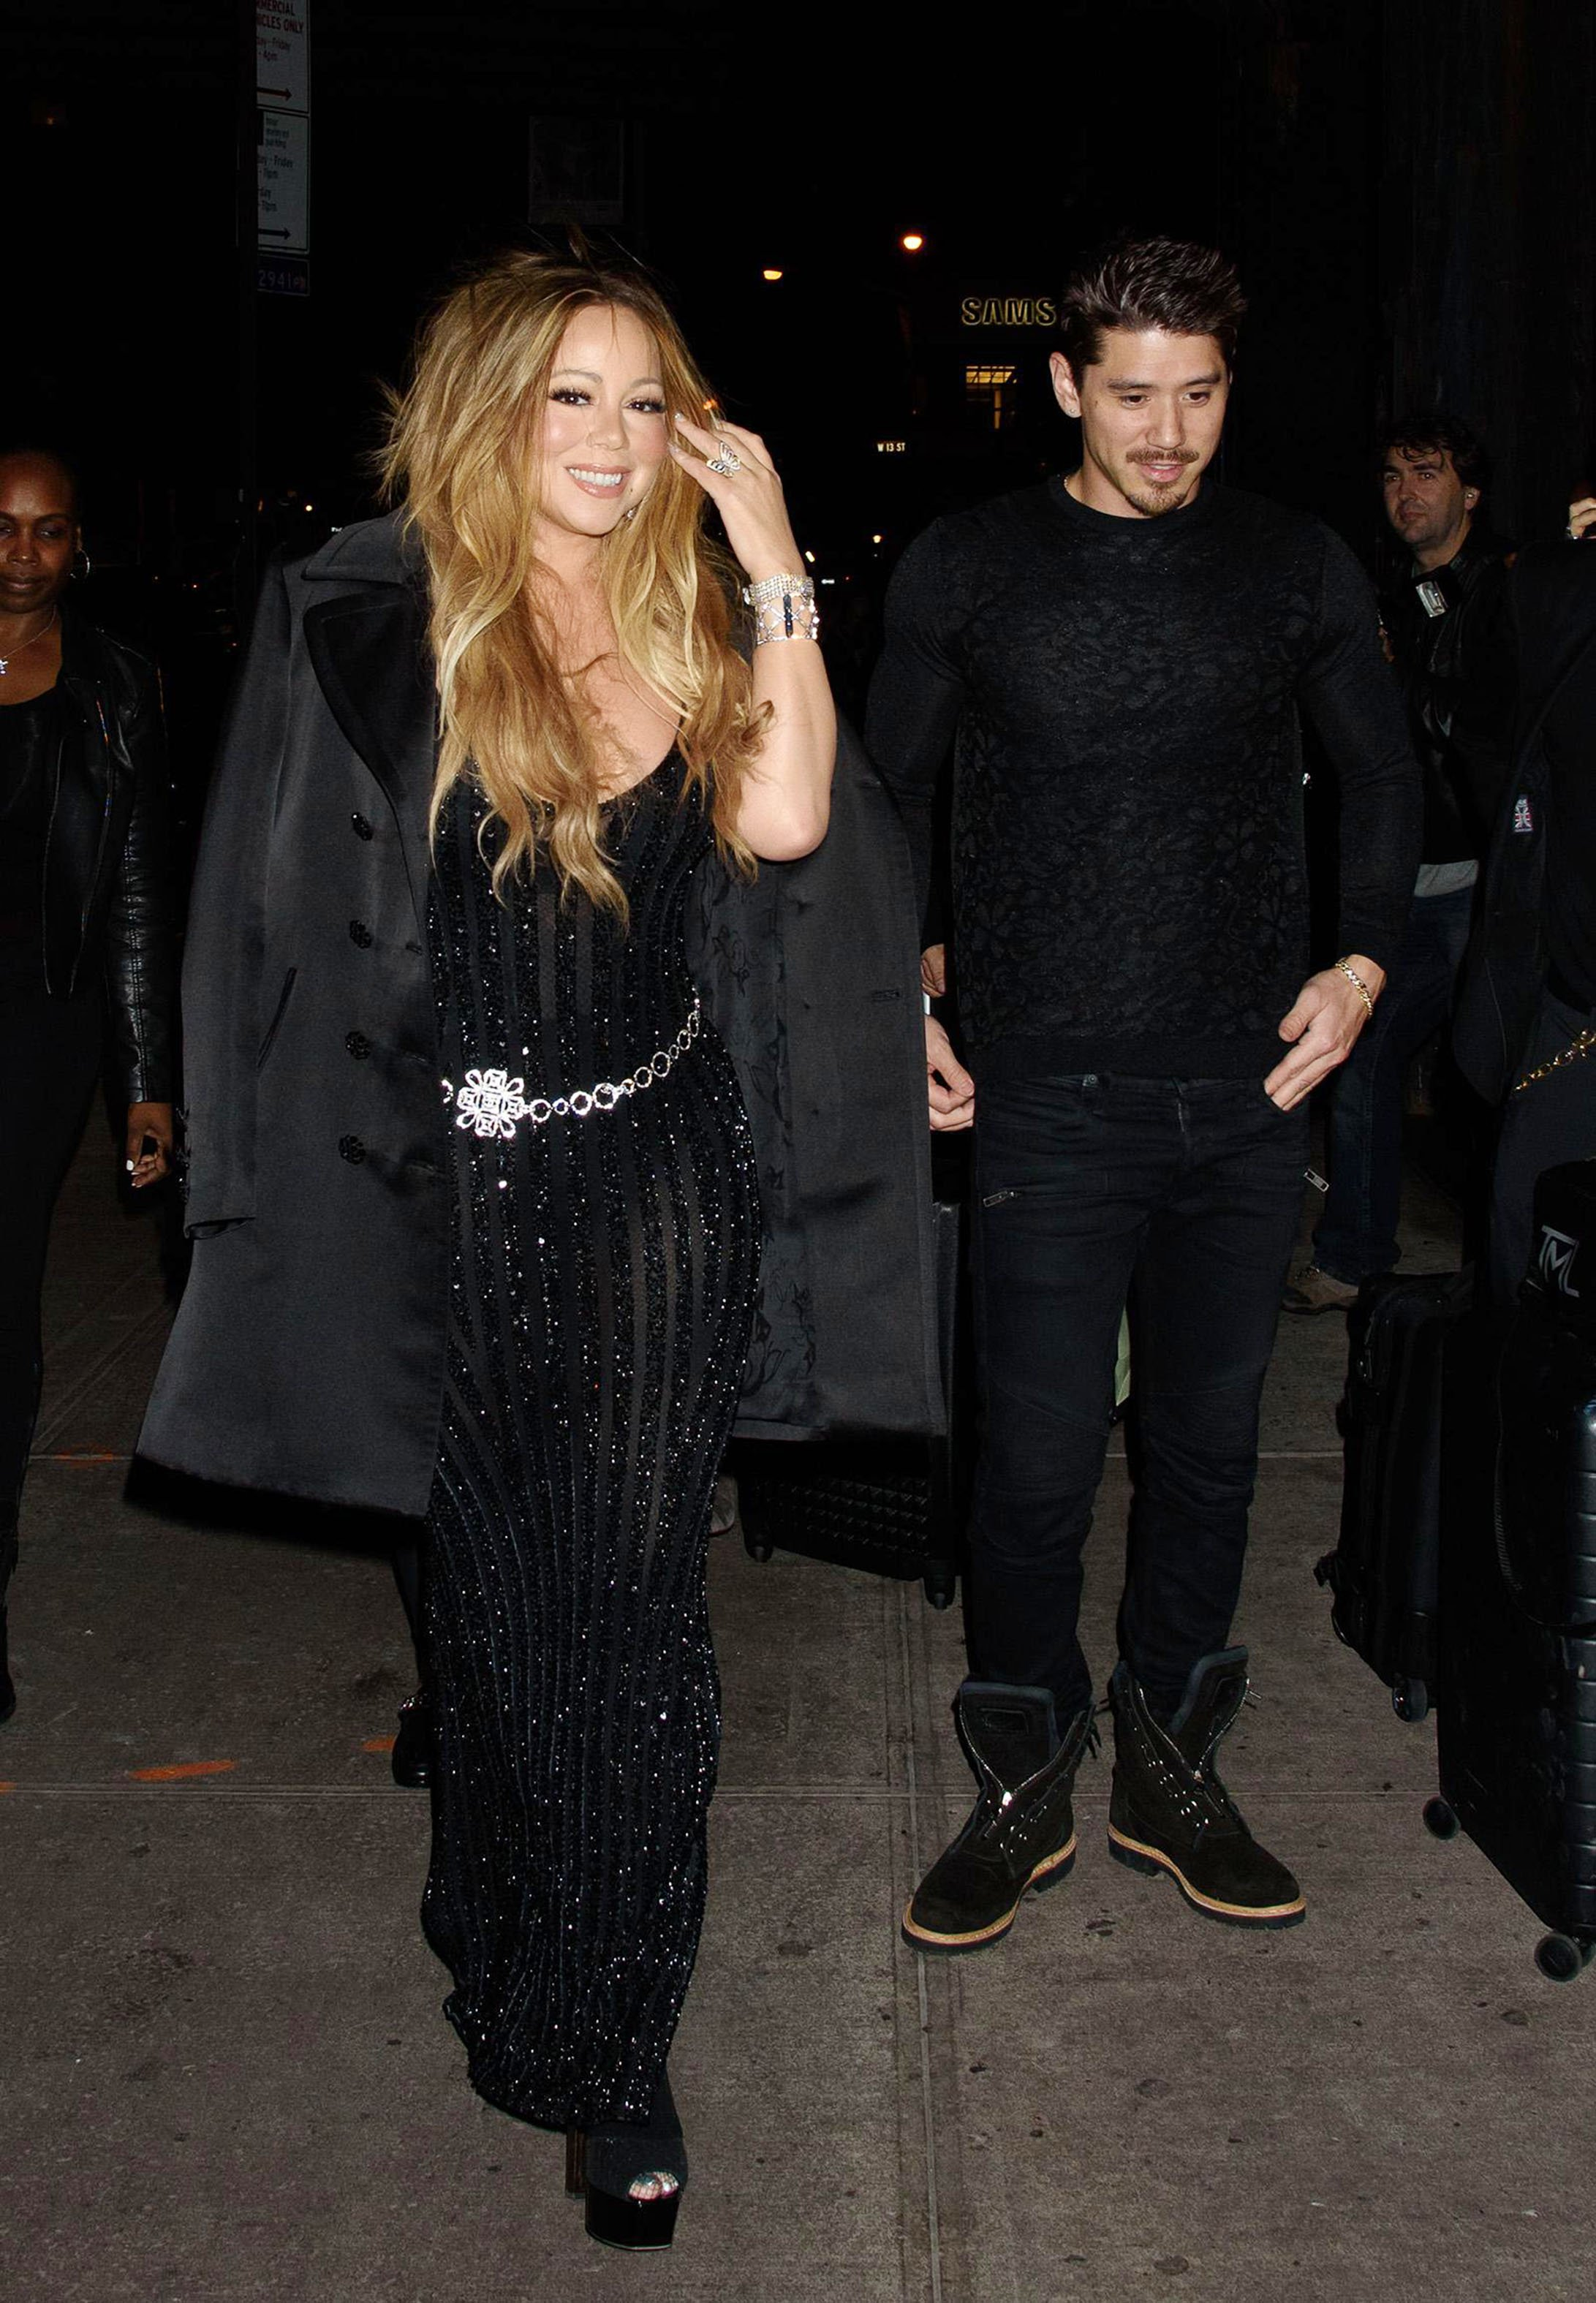 , New York, NY - 10/23/17 - V Magazine Hosts Dinner for Karl Lagerfeld  -PICTURED: Mariah Carey, Bryan Tanaka -, Image: 353729436, License: Rights-managed, Restrictions: , Model Release: no, Credit line: Profimedia, INSTAR Images